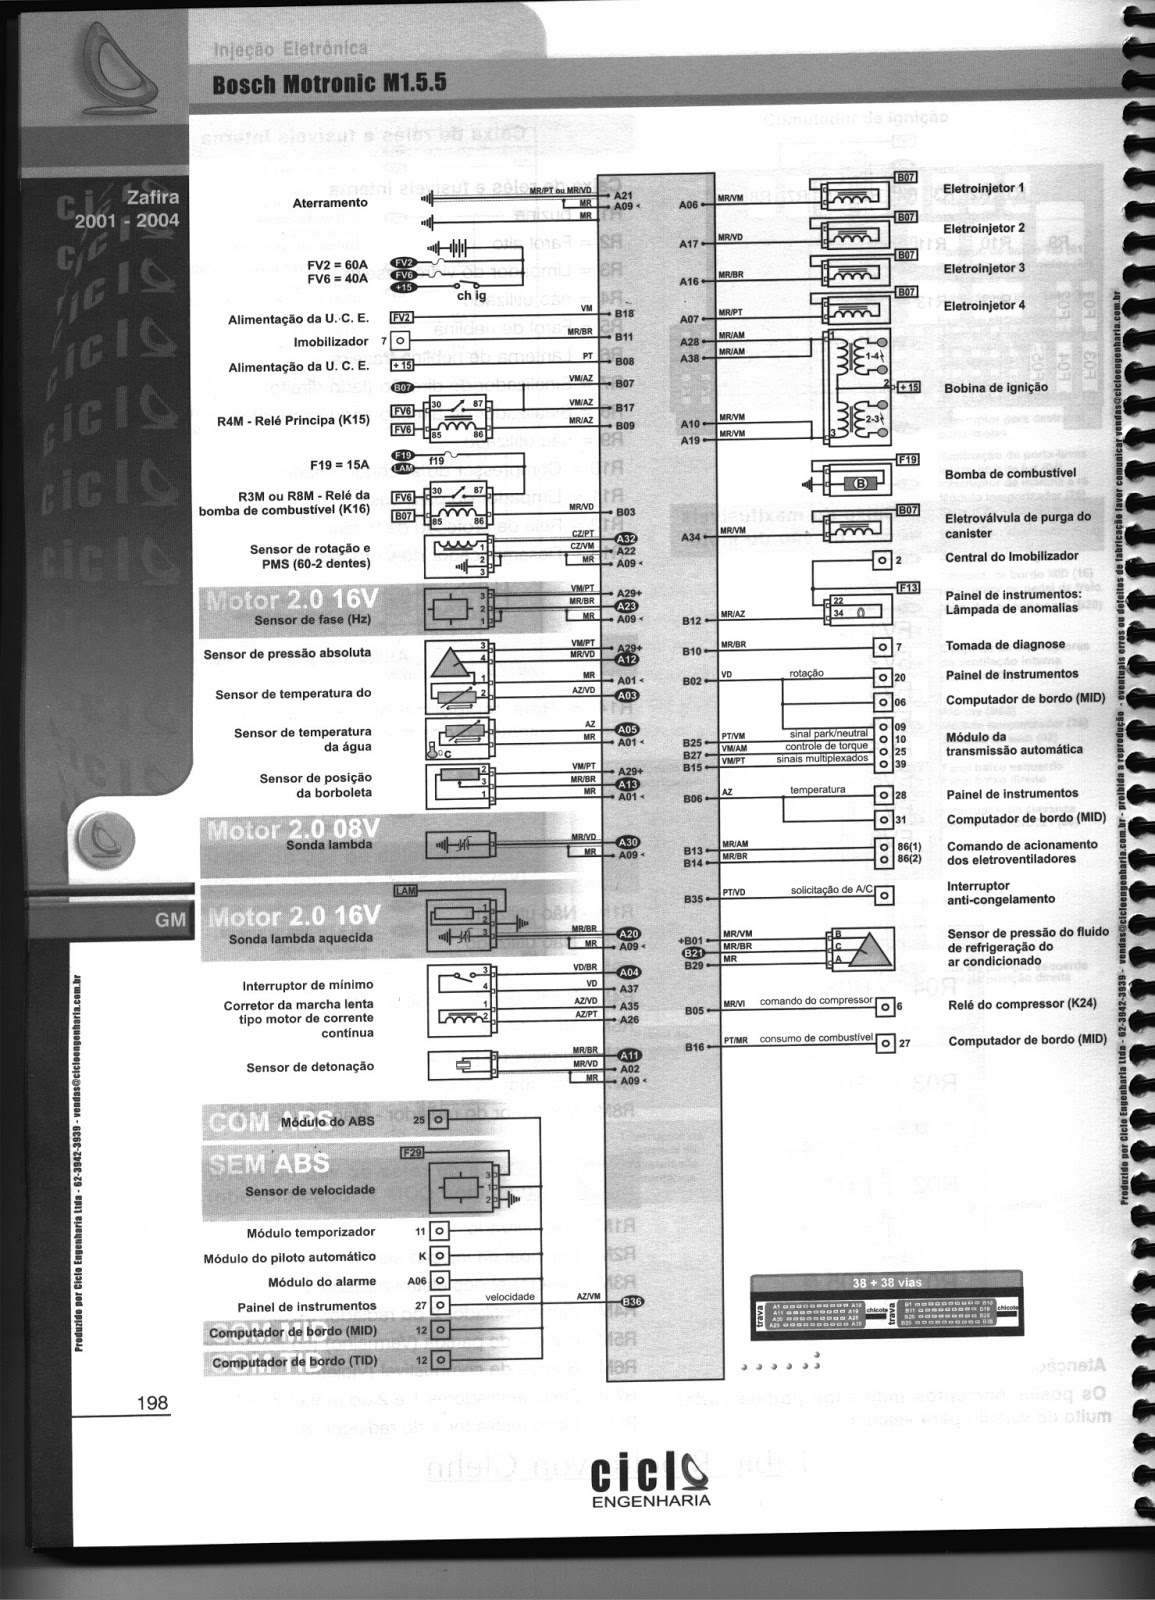 hight resolution of mazda b2200 fuse box diagram mazda free engine image for user manual download 2003 ford taurus throttle body diagram 2003 taurus fuse box diagram